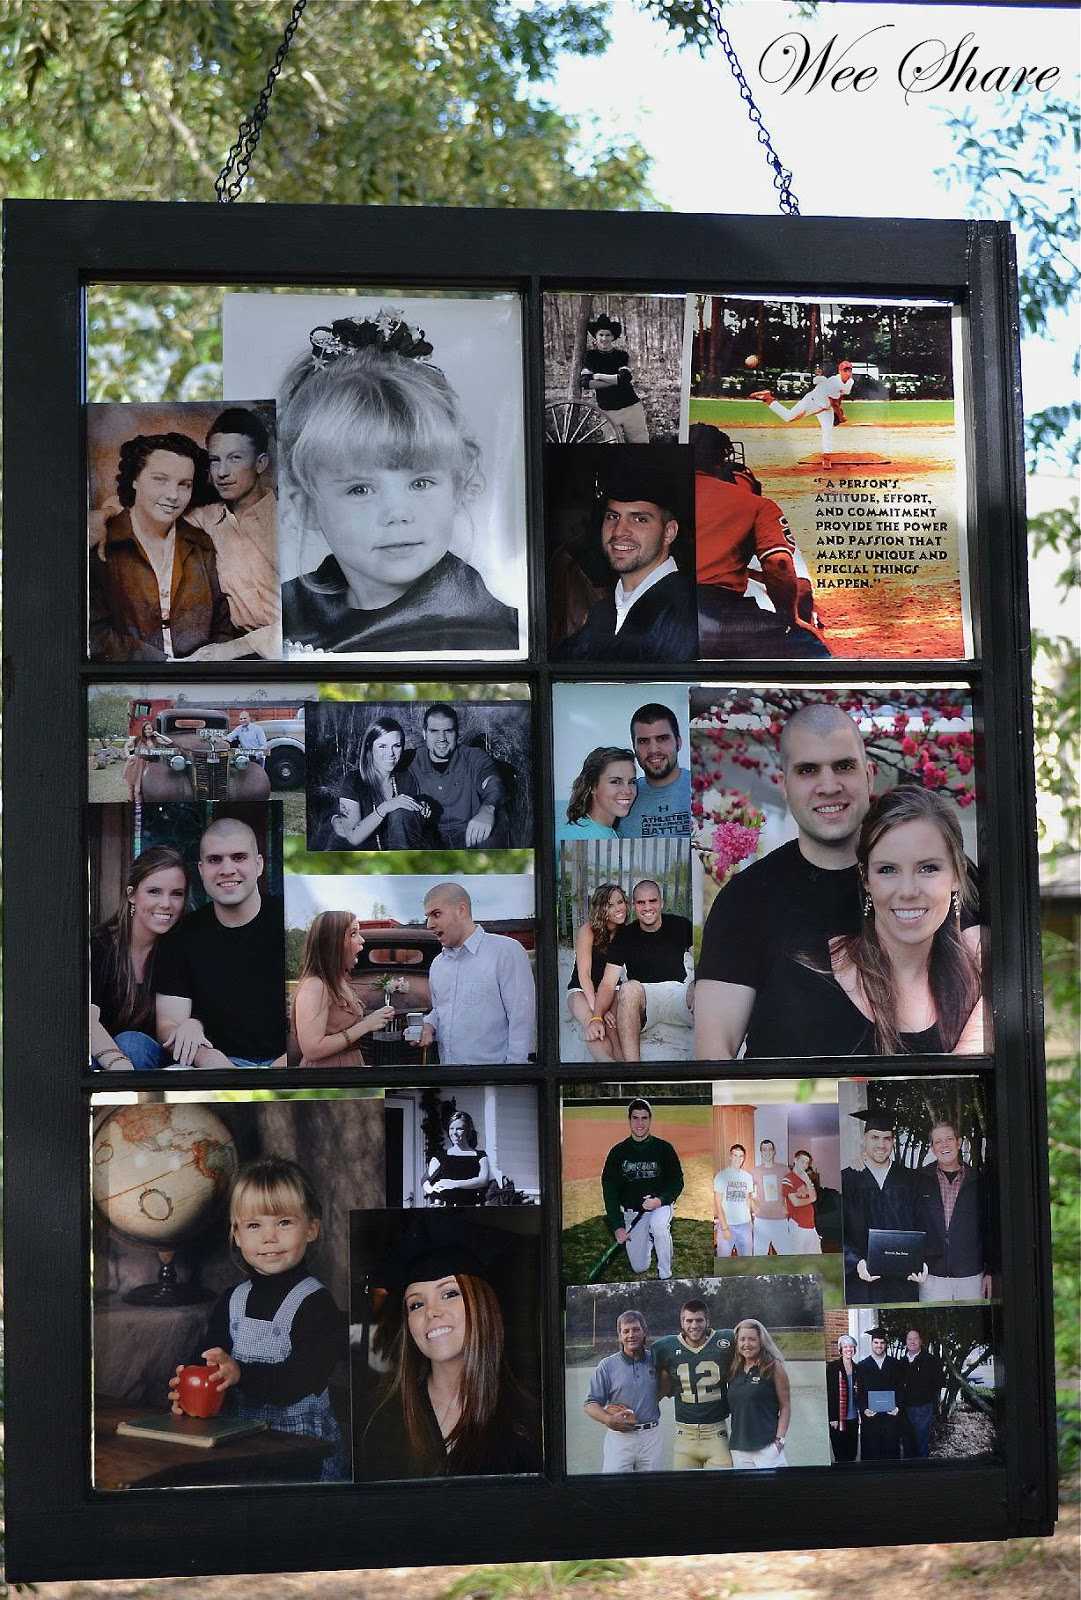 2012 Wedding Photos: Window Photo Collage | Wee Share